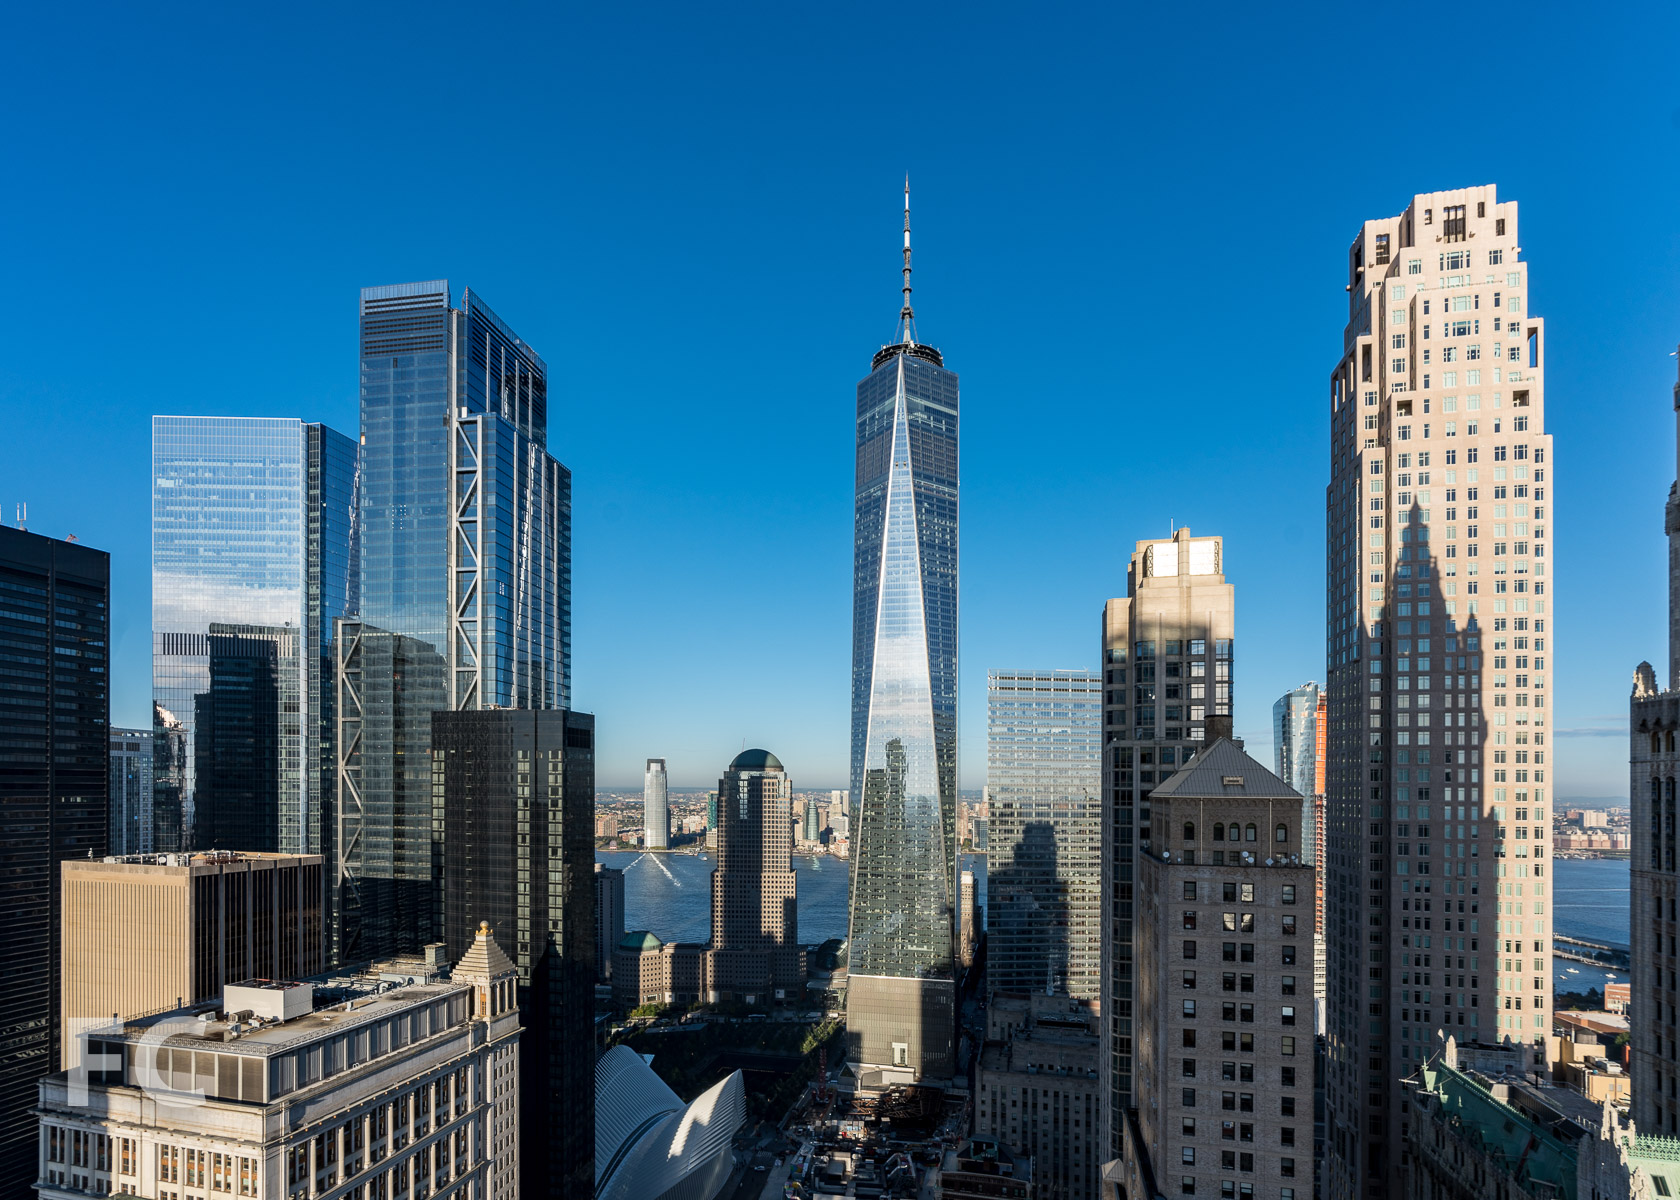 Looking west from the 41st floor towards the World Trade Center.